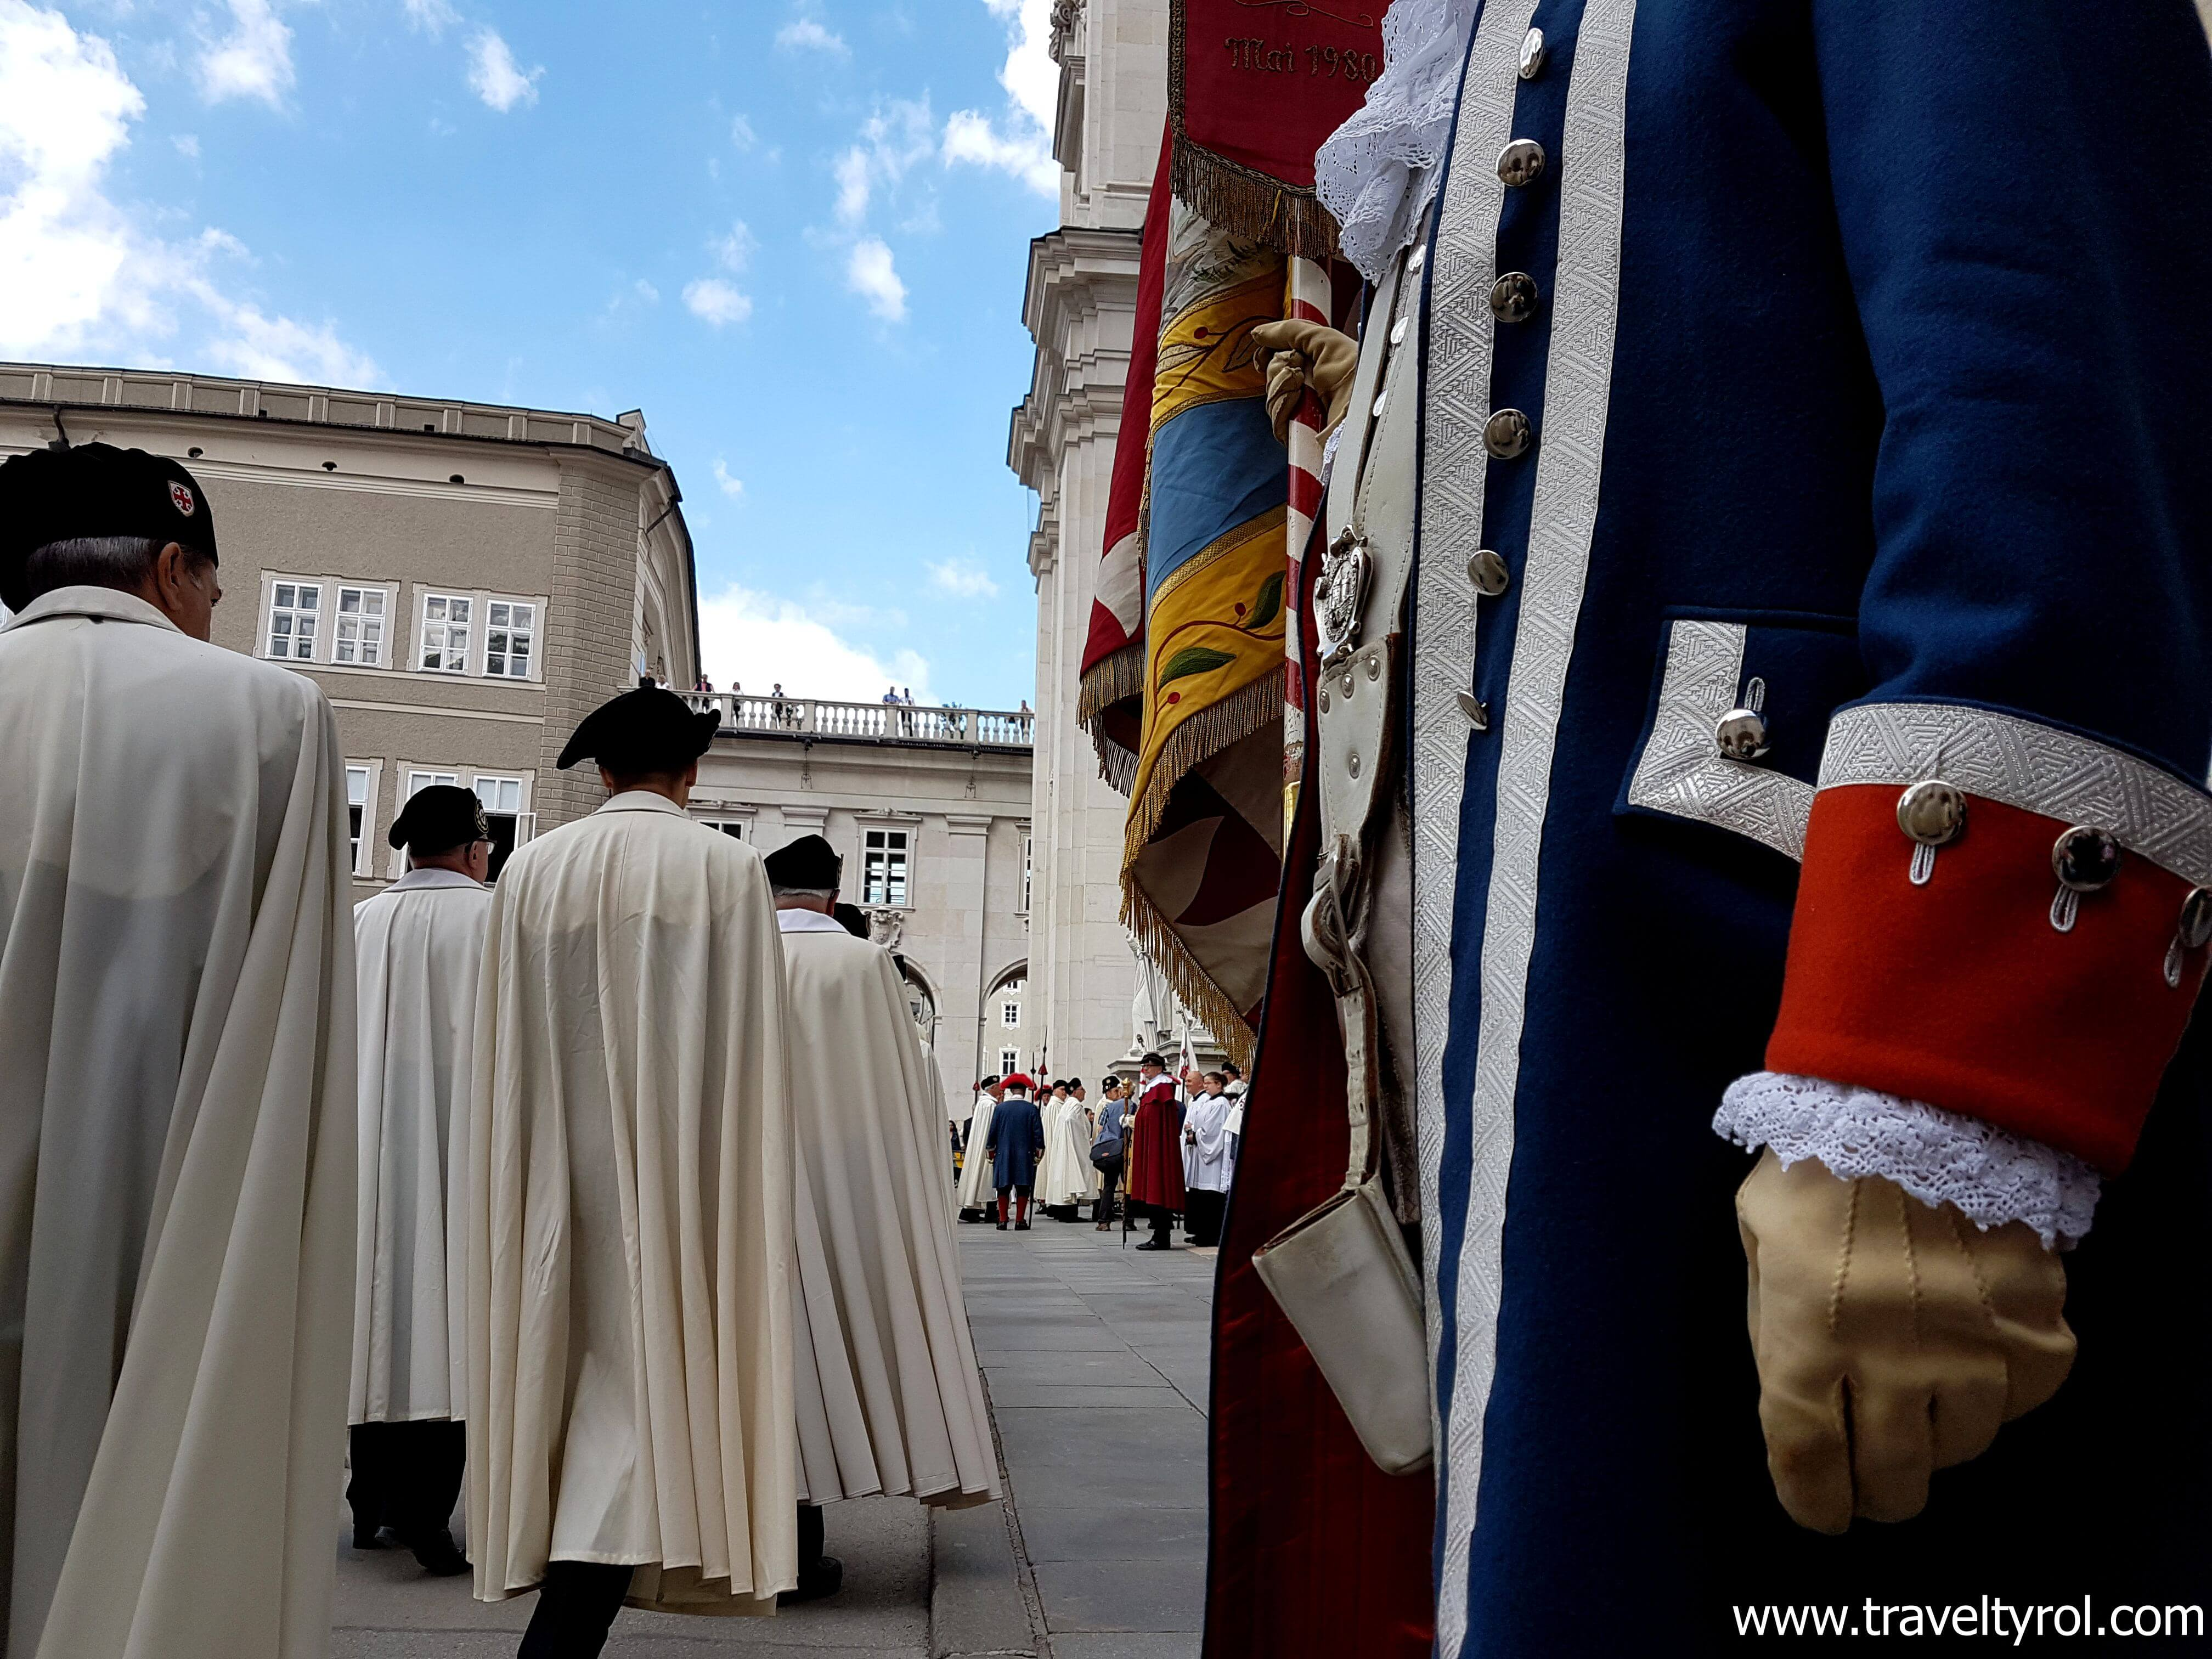 Knights arrive at the Salzburg Cathedral which is included in the Salzburg Card.